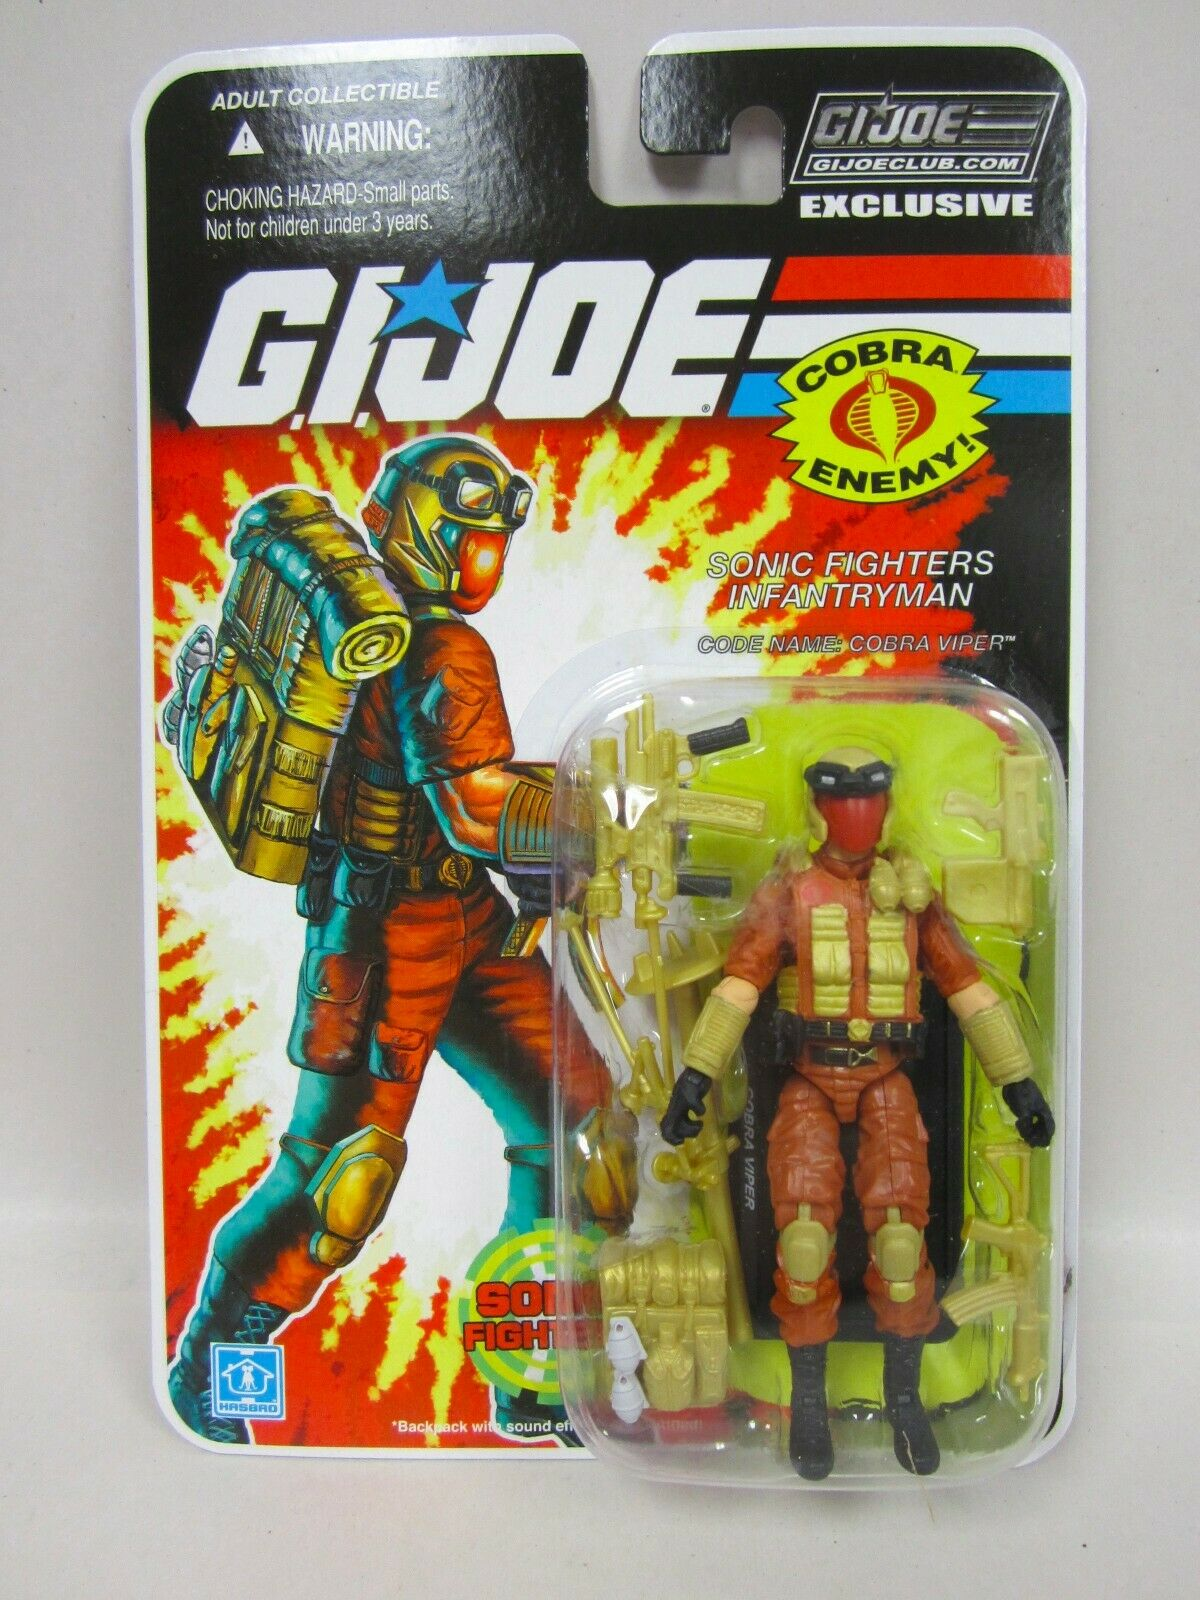 G.I. JOE COLLECTOR'S CLUB FSS Final 12 Sonic Fighter Viper Action Figure Comme neuf on Card New